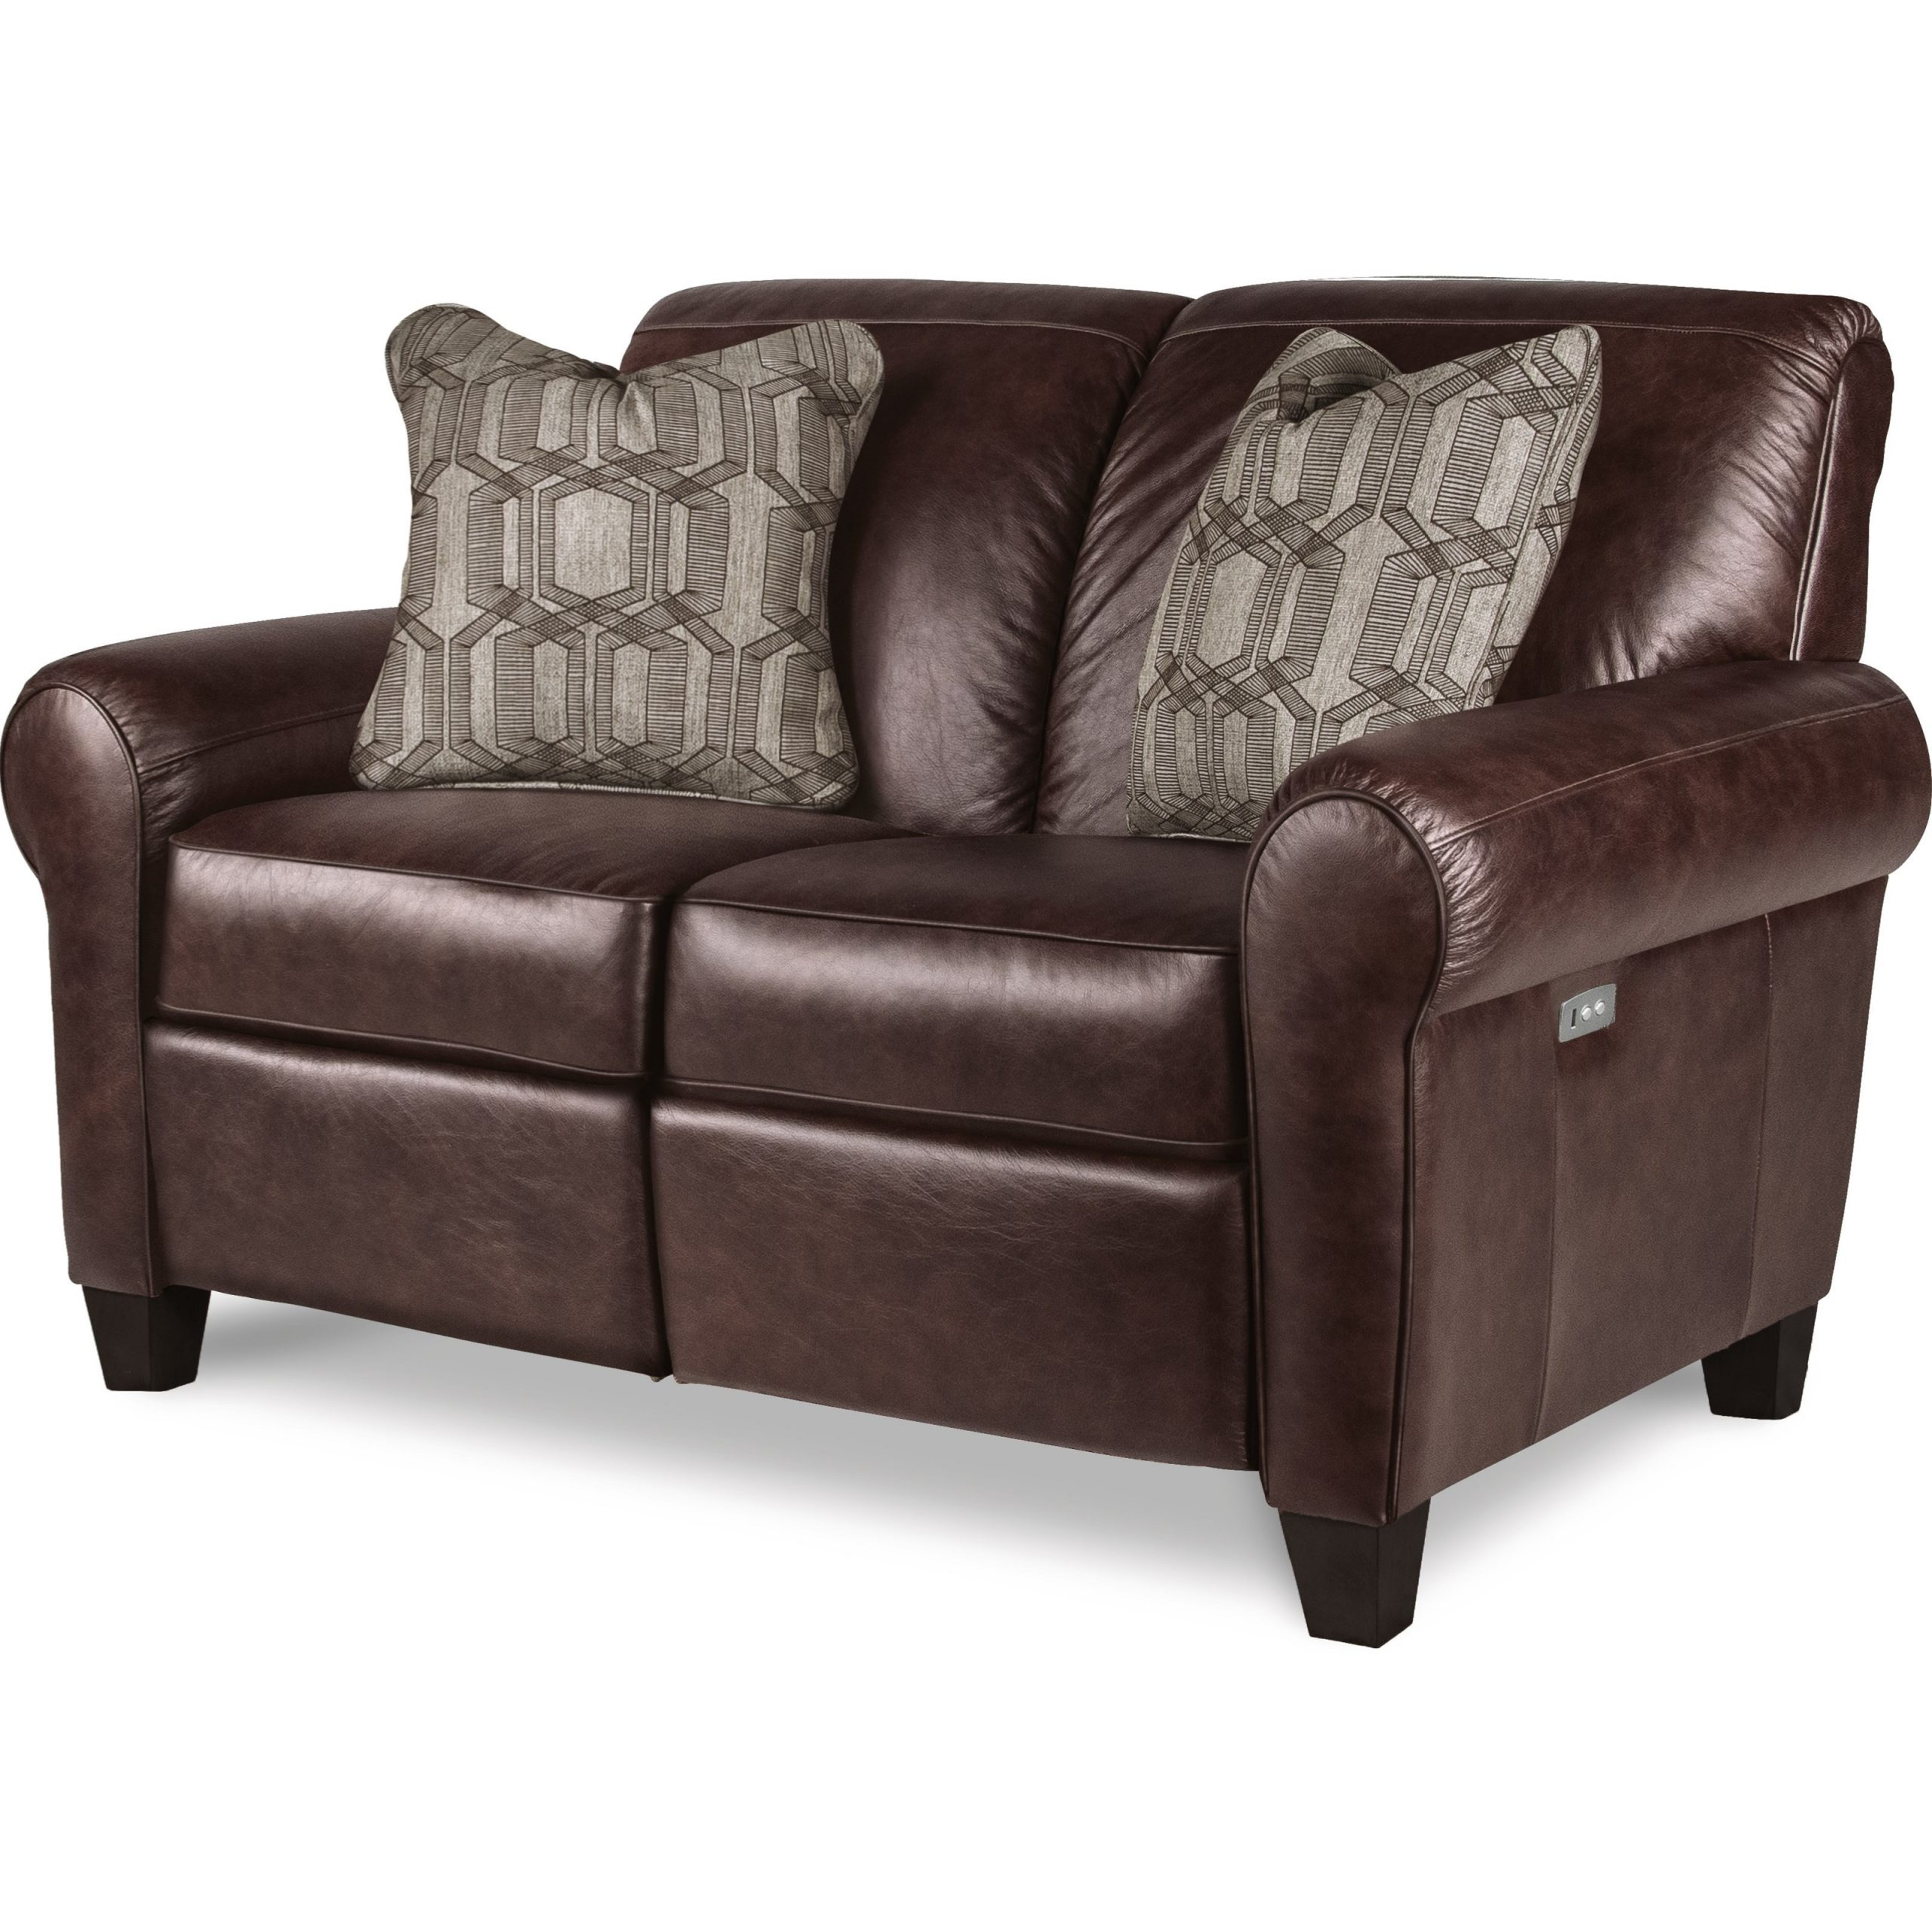 Bennett Power Reclining Sofas With Regard To Well Known La Z Boy Bennett Duo™ Power Reclining Loveseat With Usb (View 2 of 15)